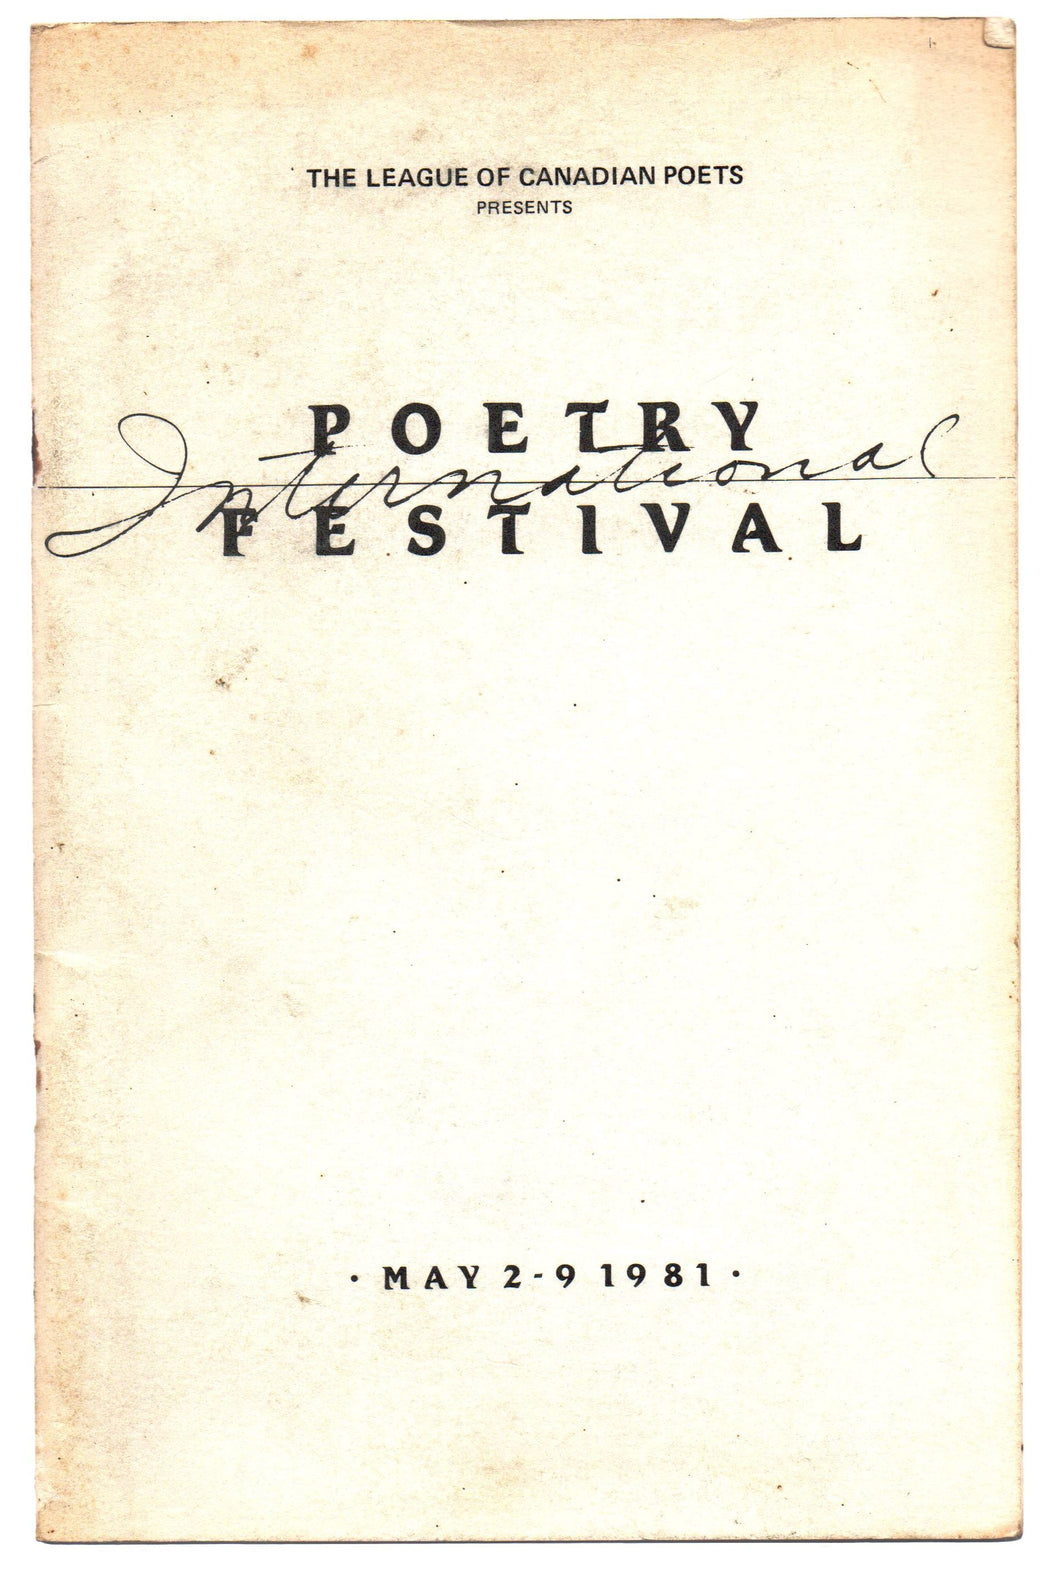 League of Canadian Poets International Poetry Festival, 1981